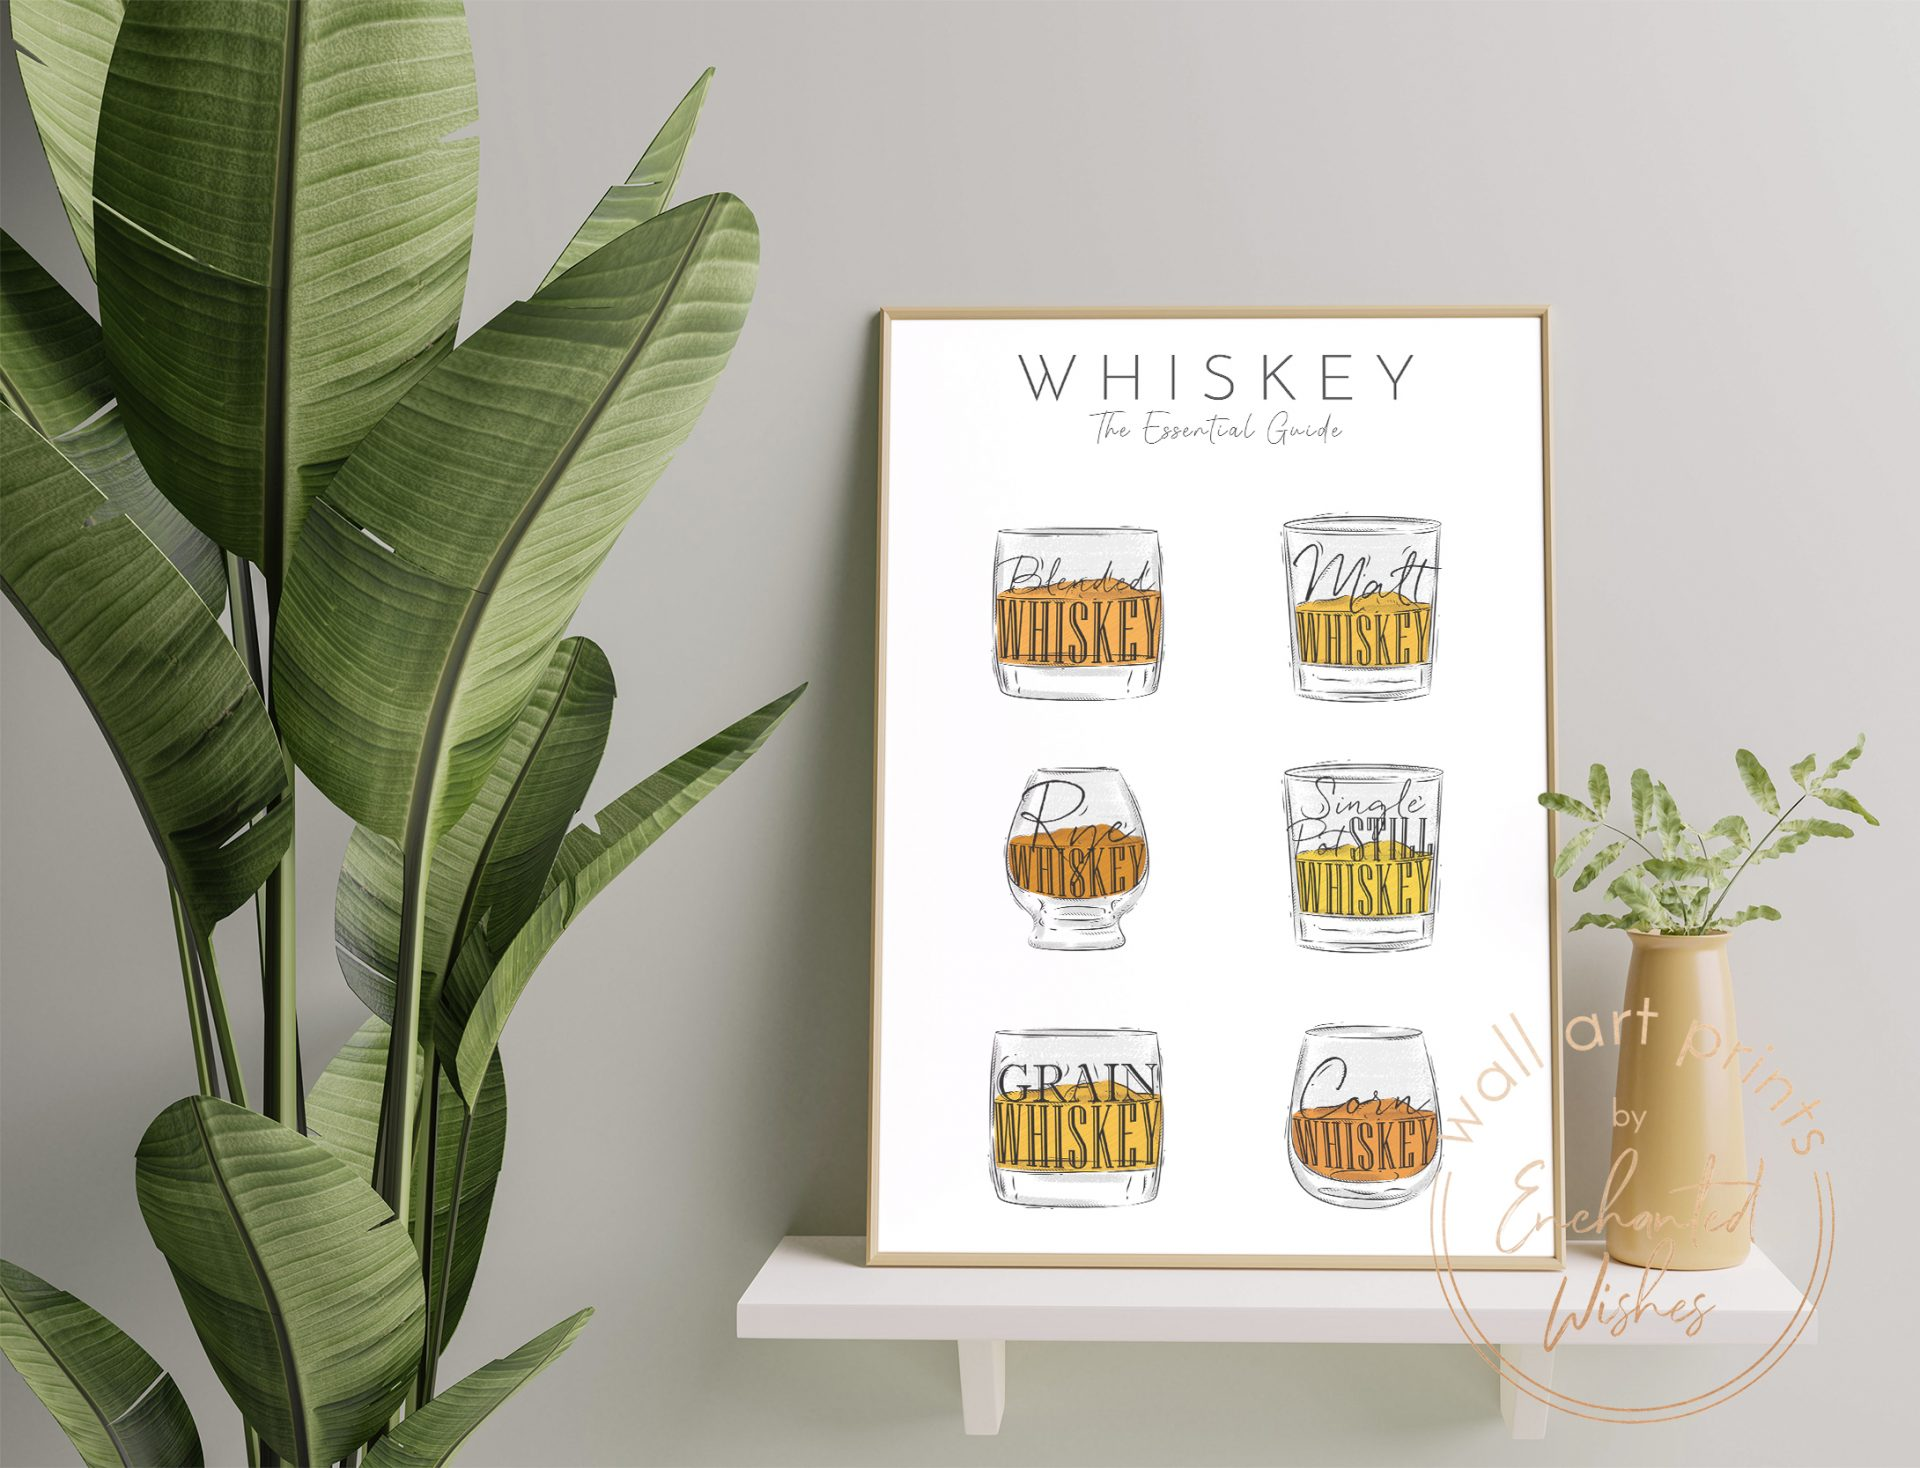 Whiskey guide print